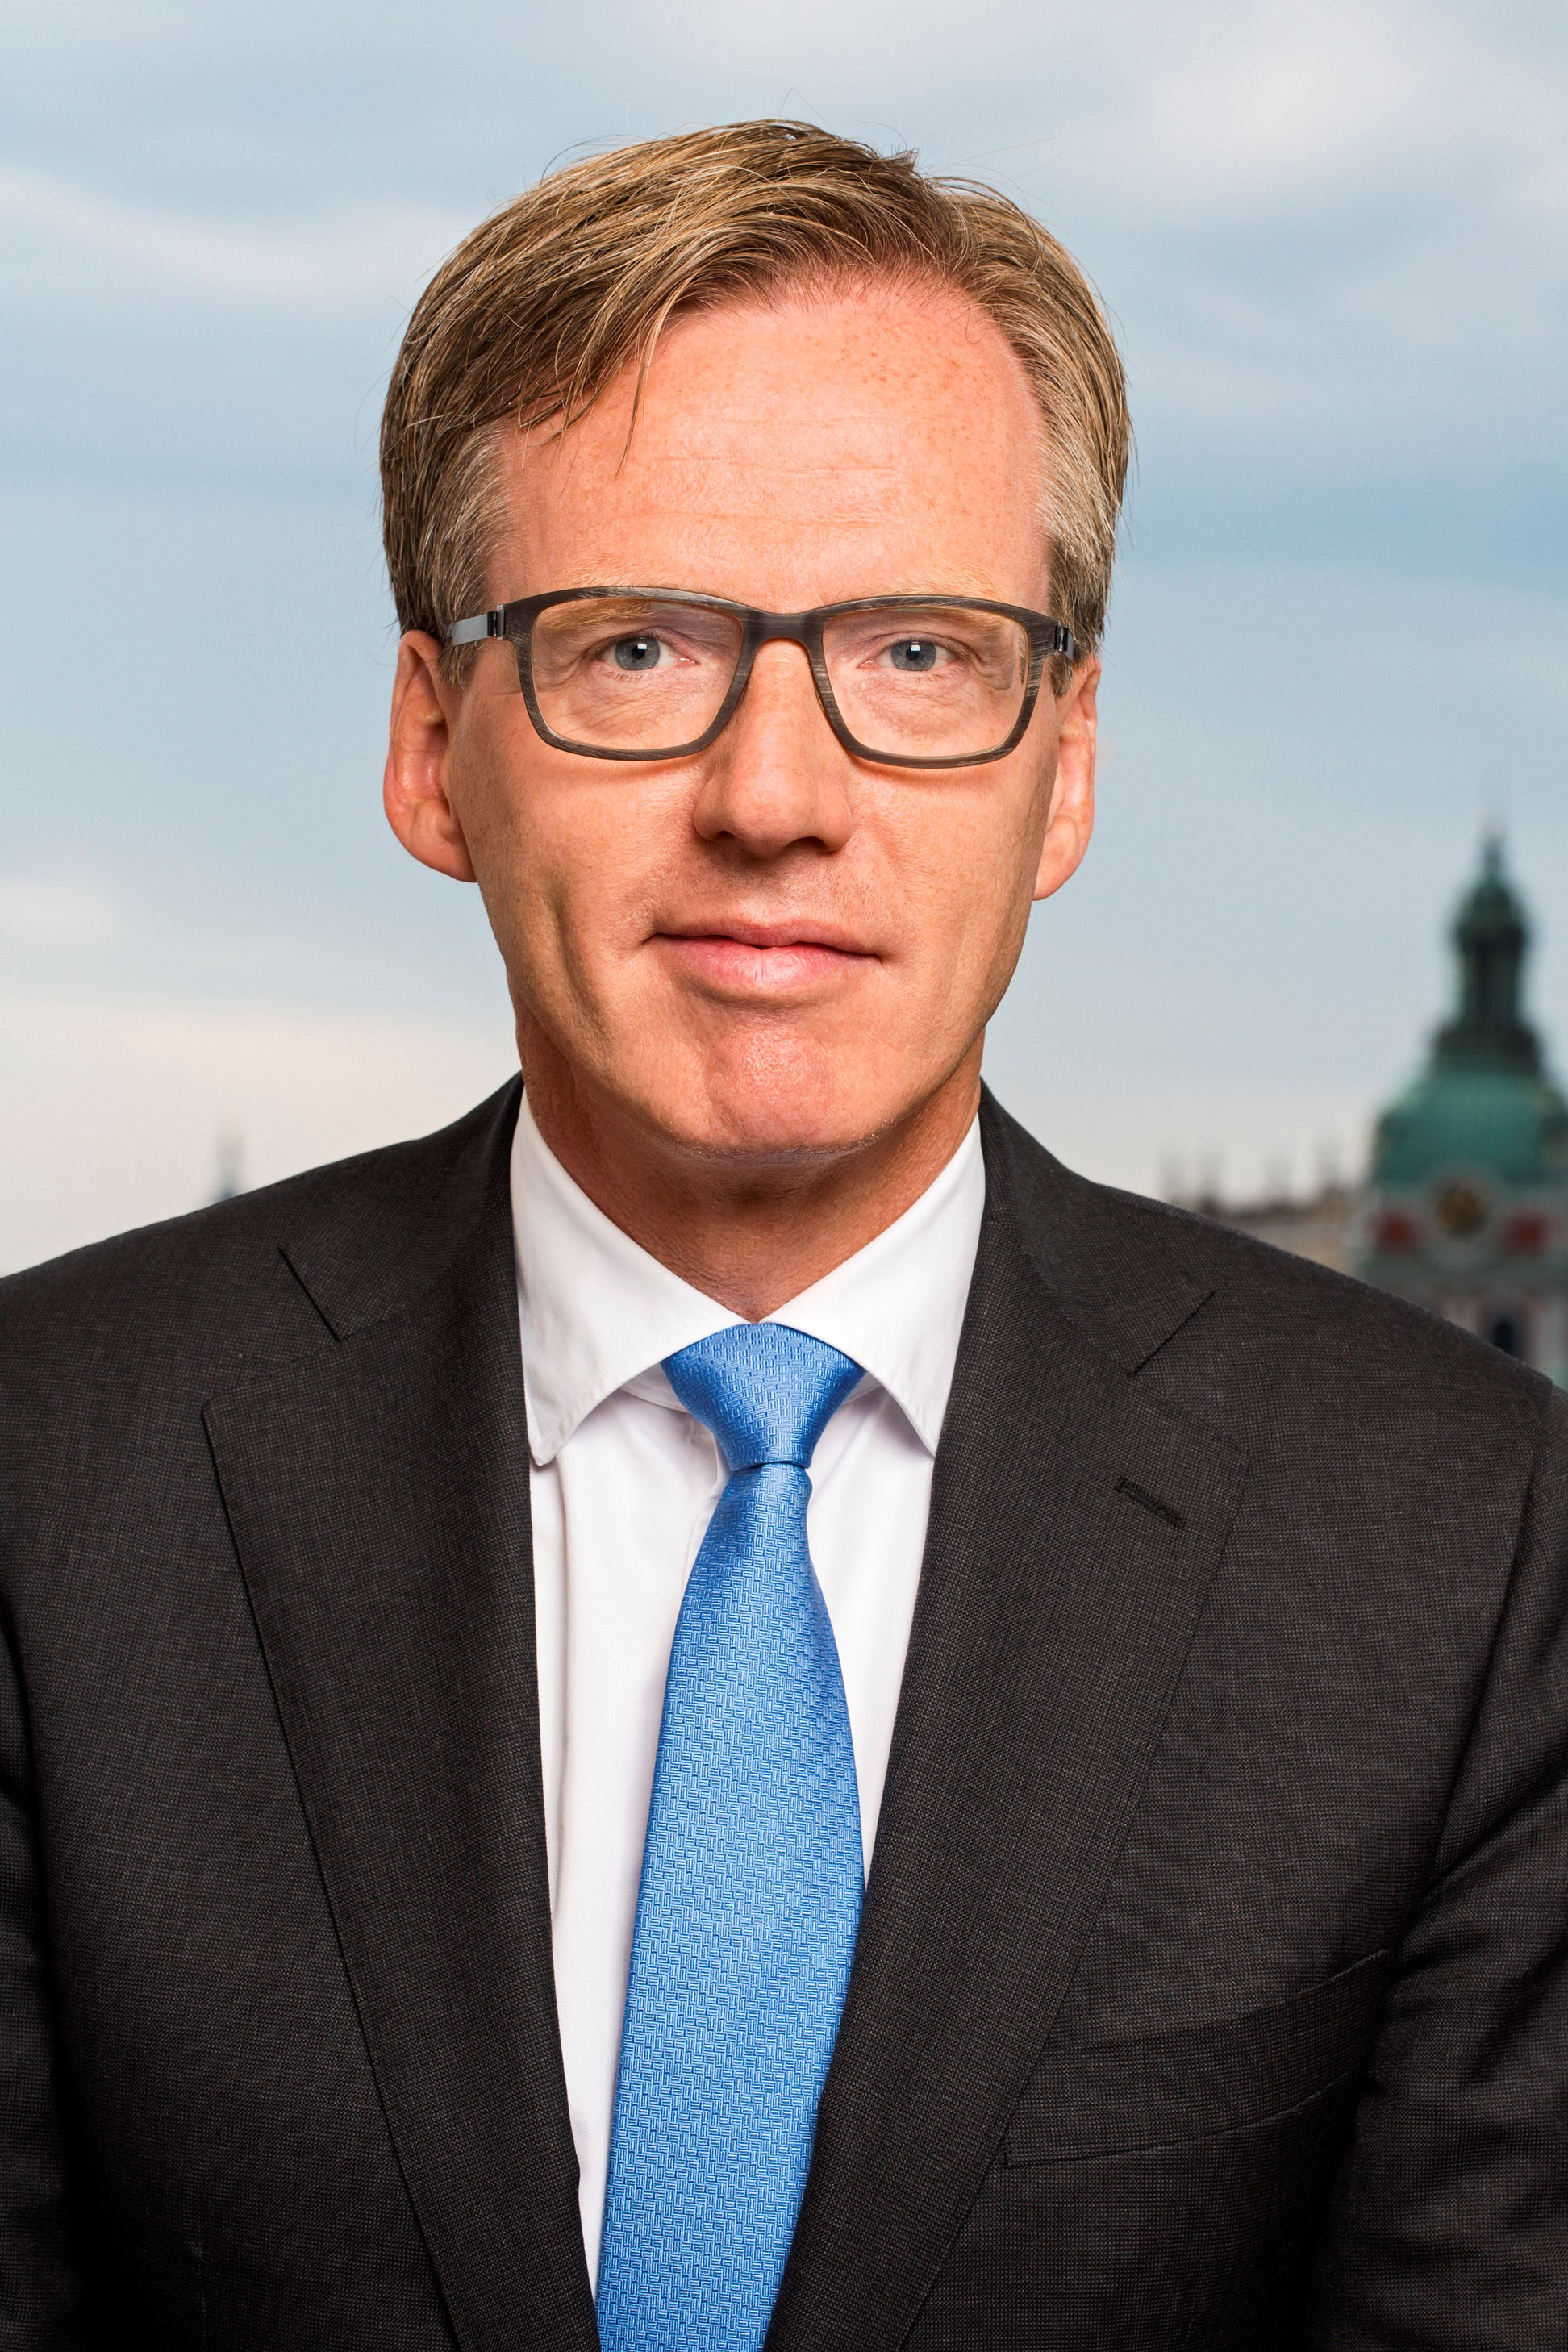 Torsten Hagen Jørgensen, Bank Director and COO of the Nordea Group.